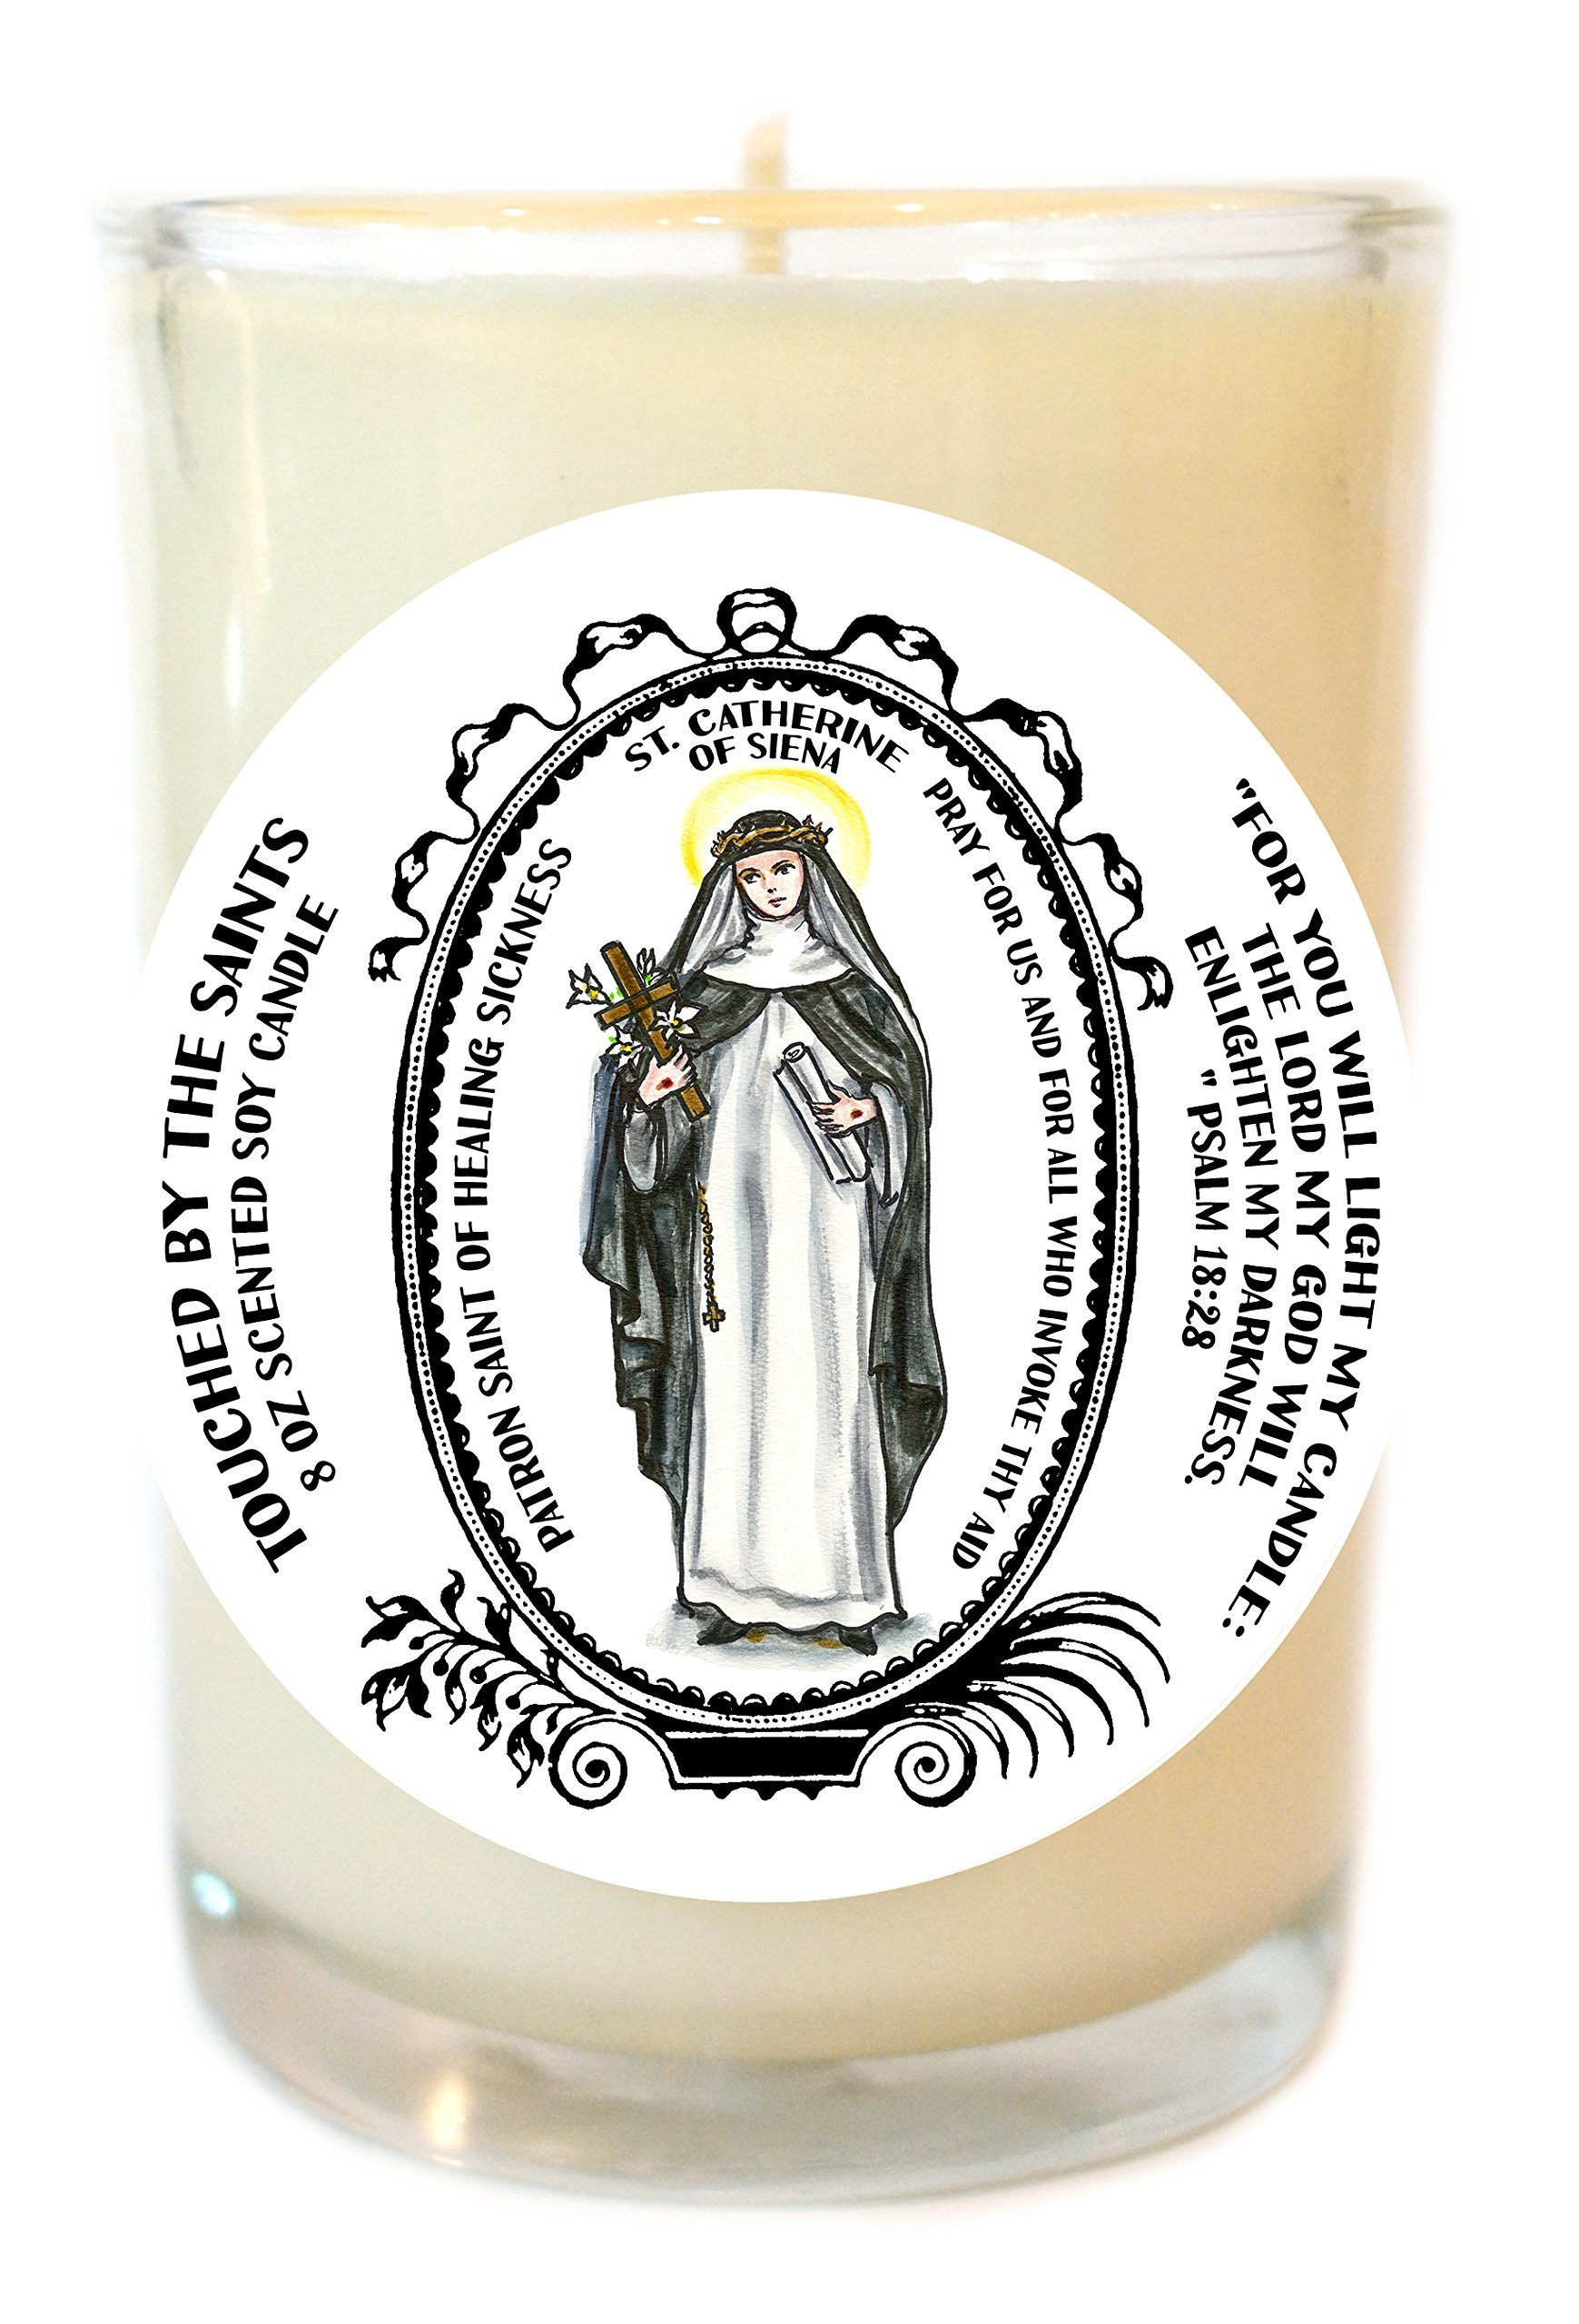 Saint Catherine of Siena Patron of Healing Sickness 8 Oz Scented Soy Candle